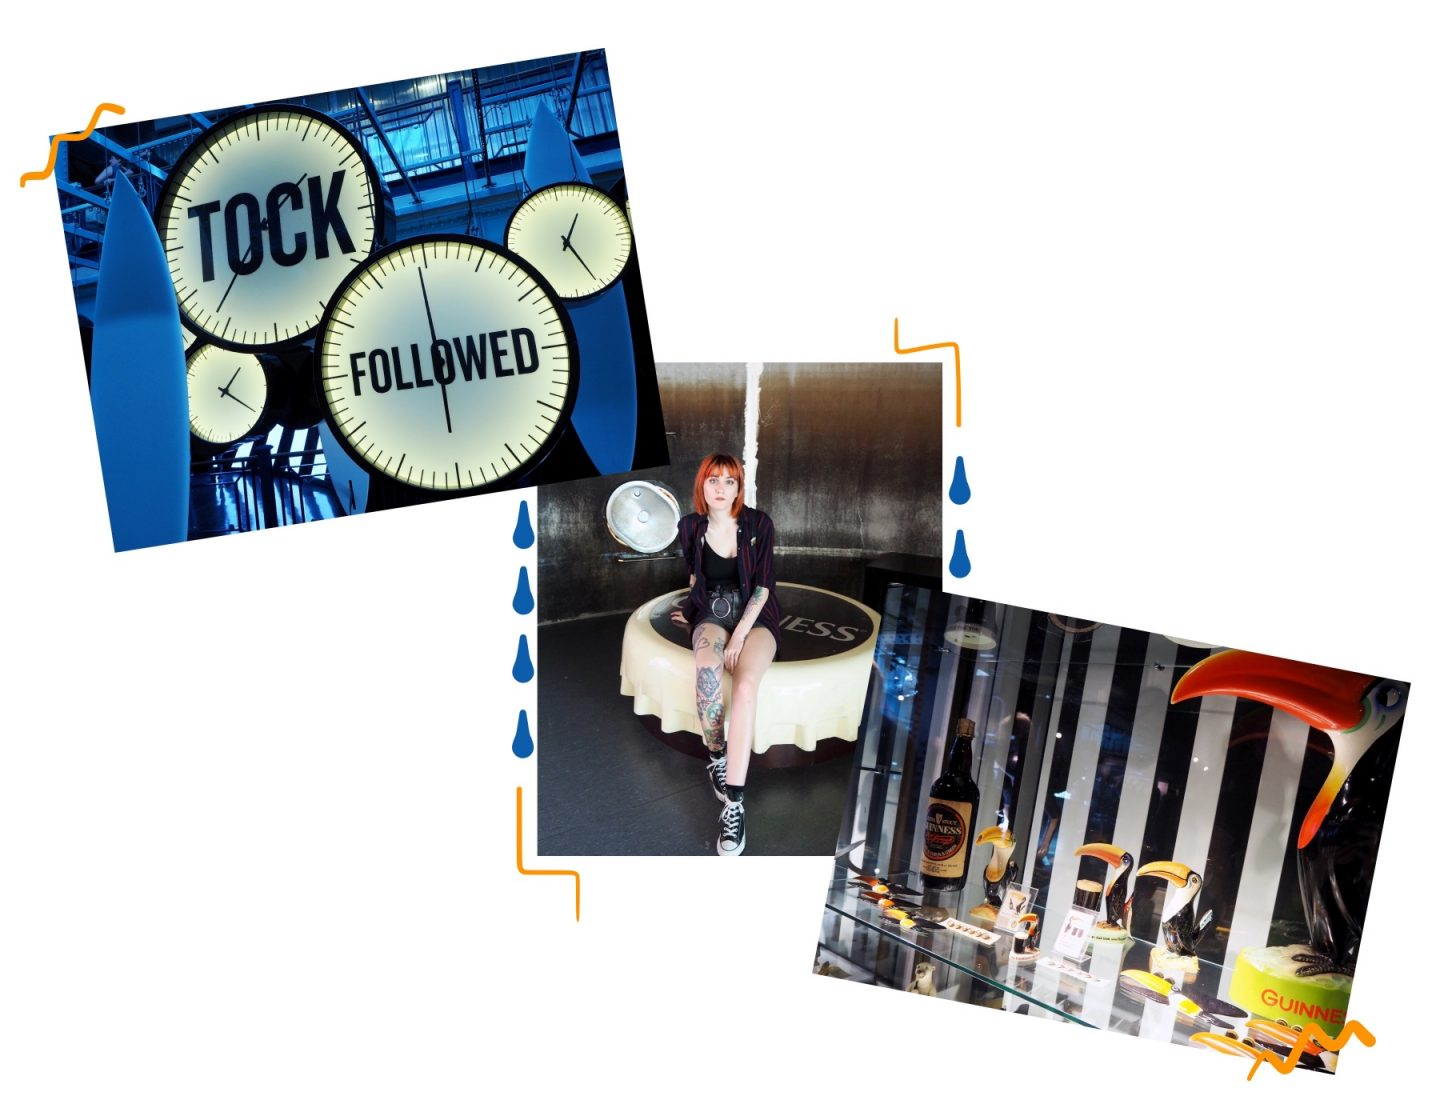 Dublin diaries; Exploring & Guinness tour - Guinness store house clocks, selfie & toucans collage